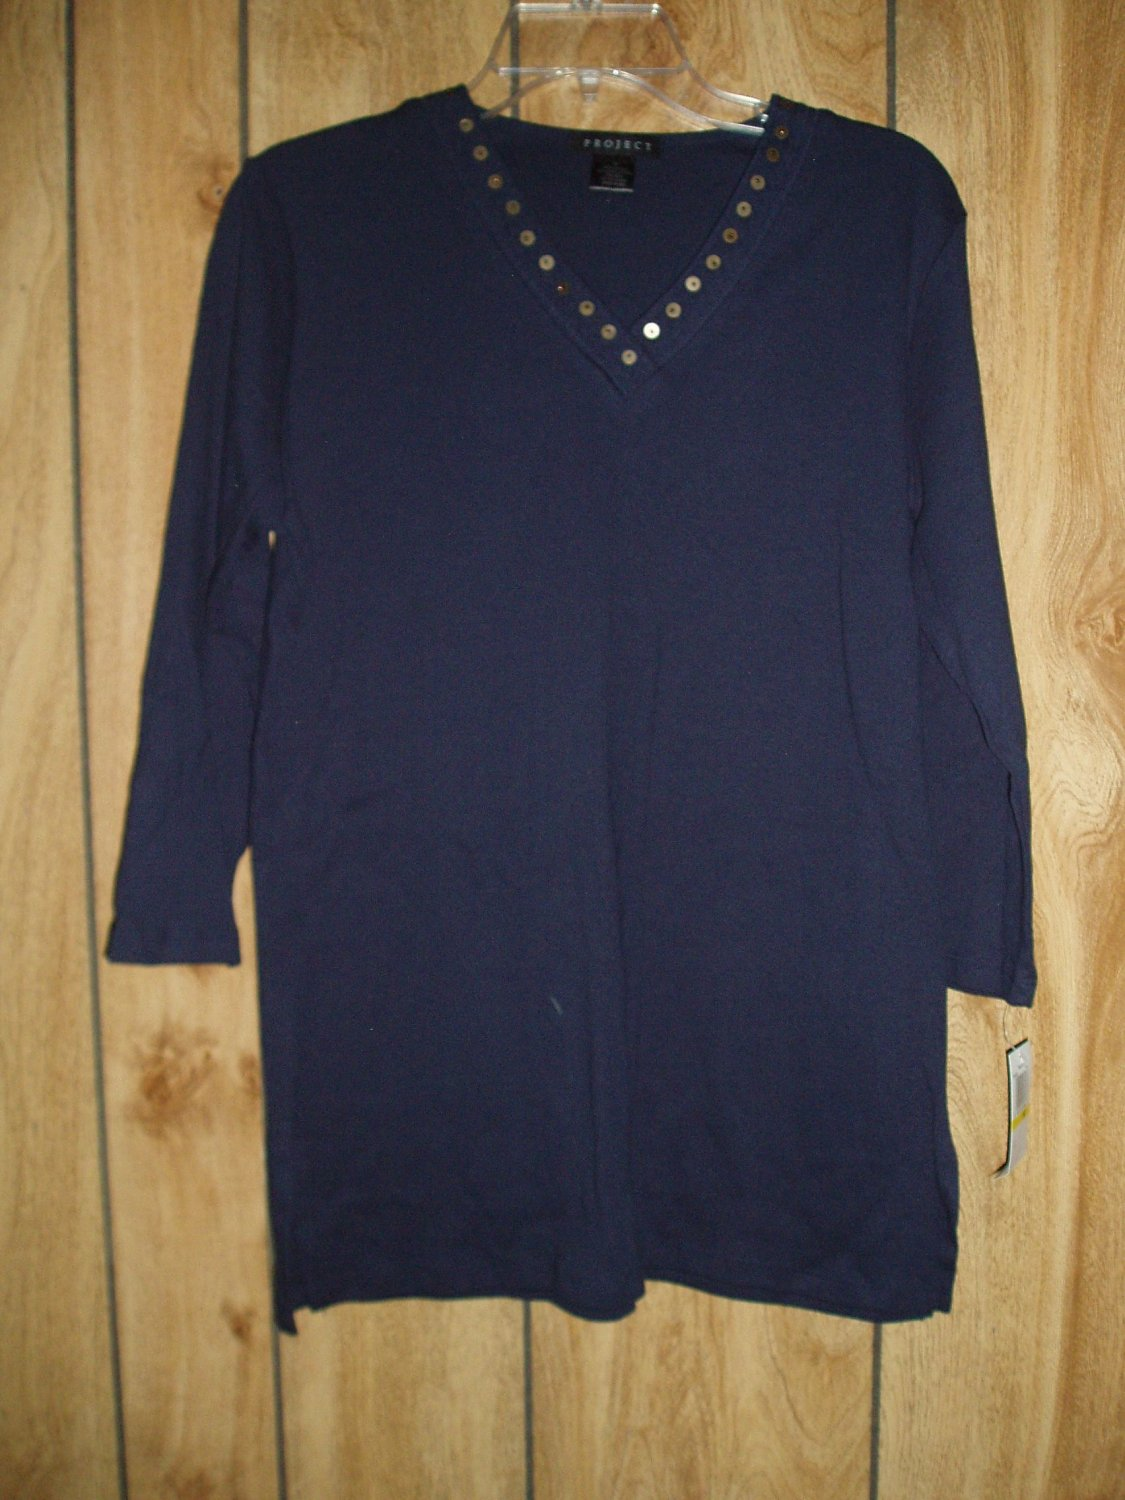 Project dark blue top with 3/4 sleeve, size Medium, M